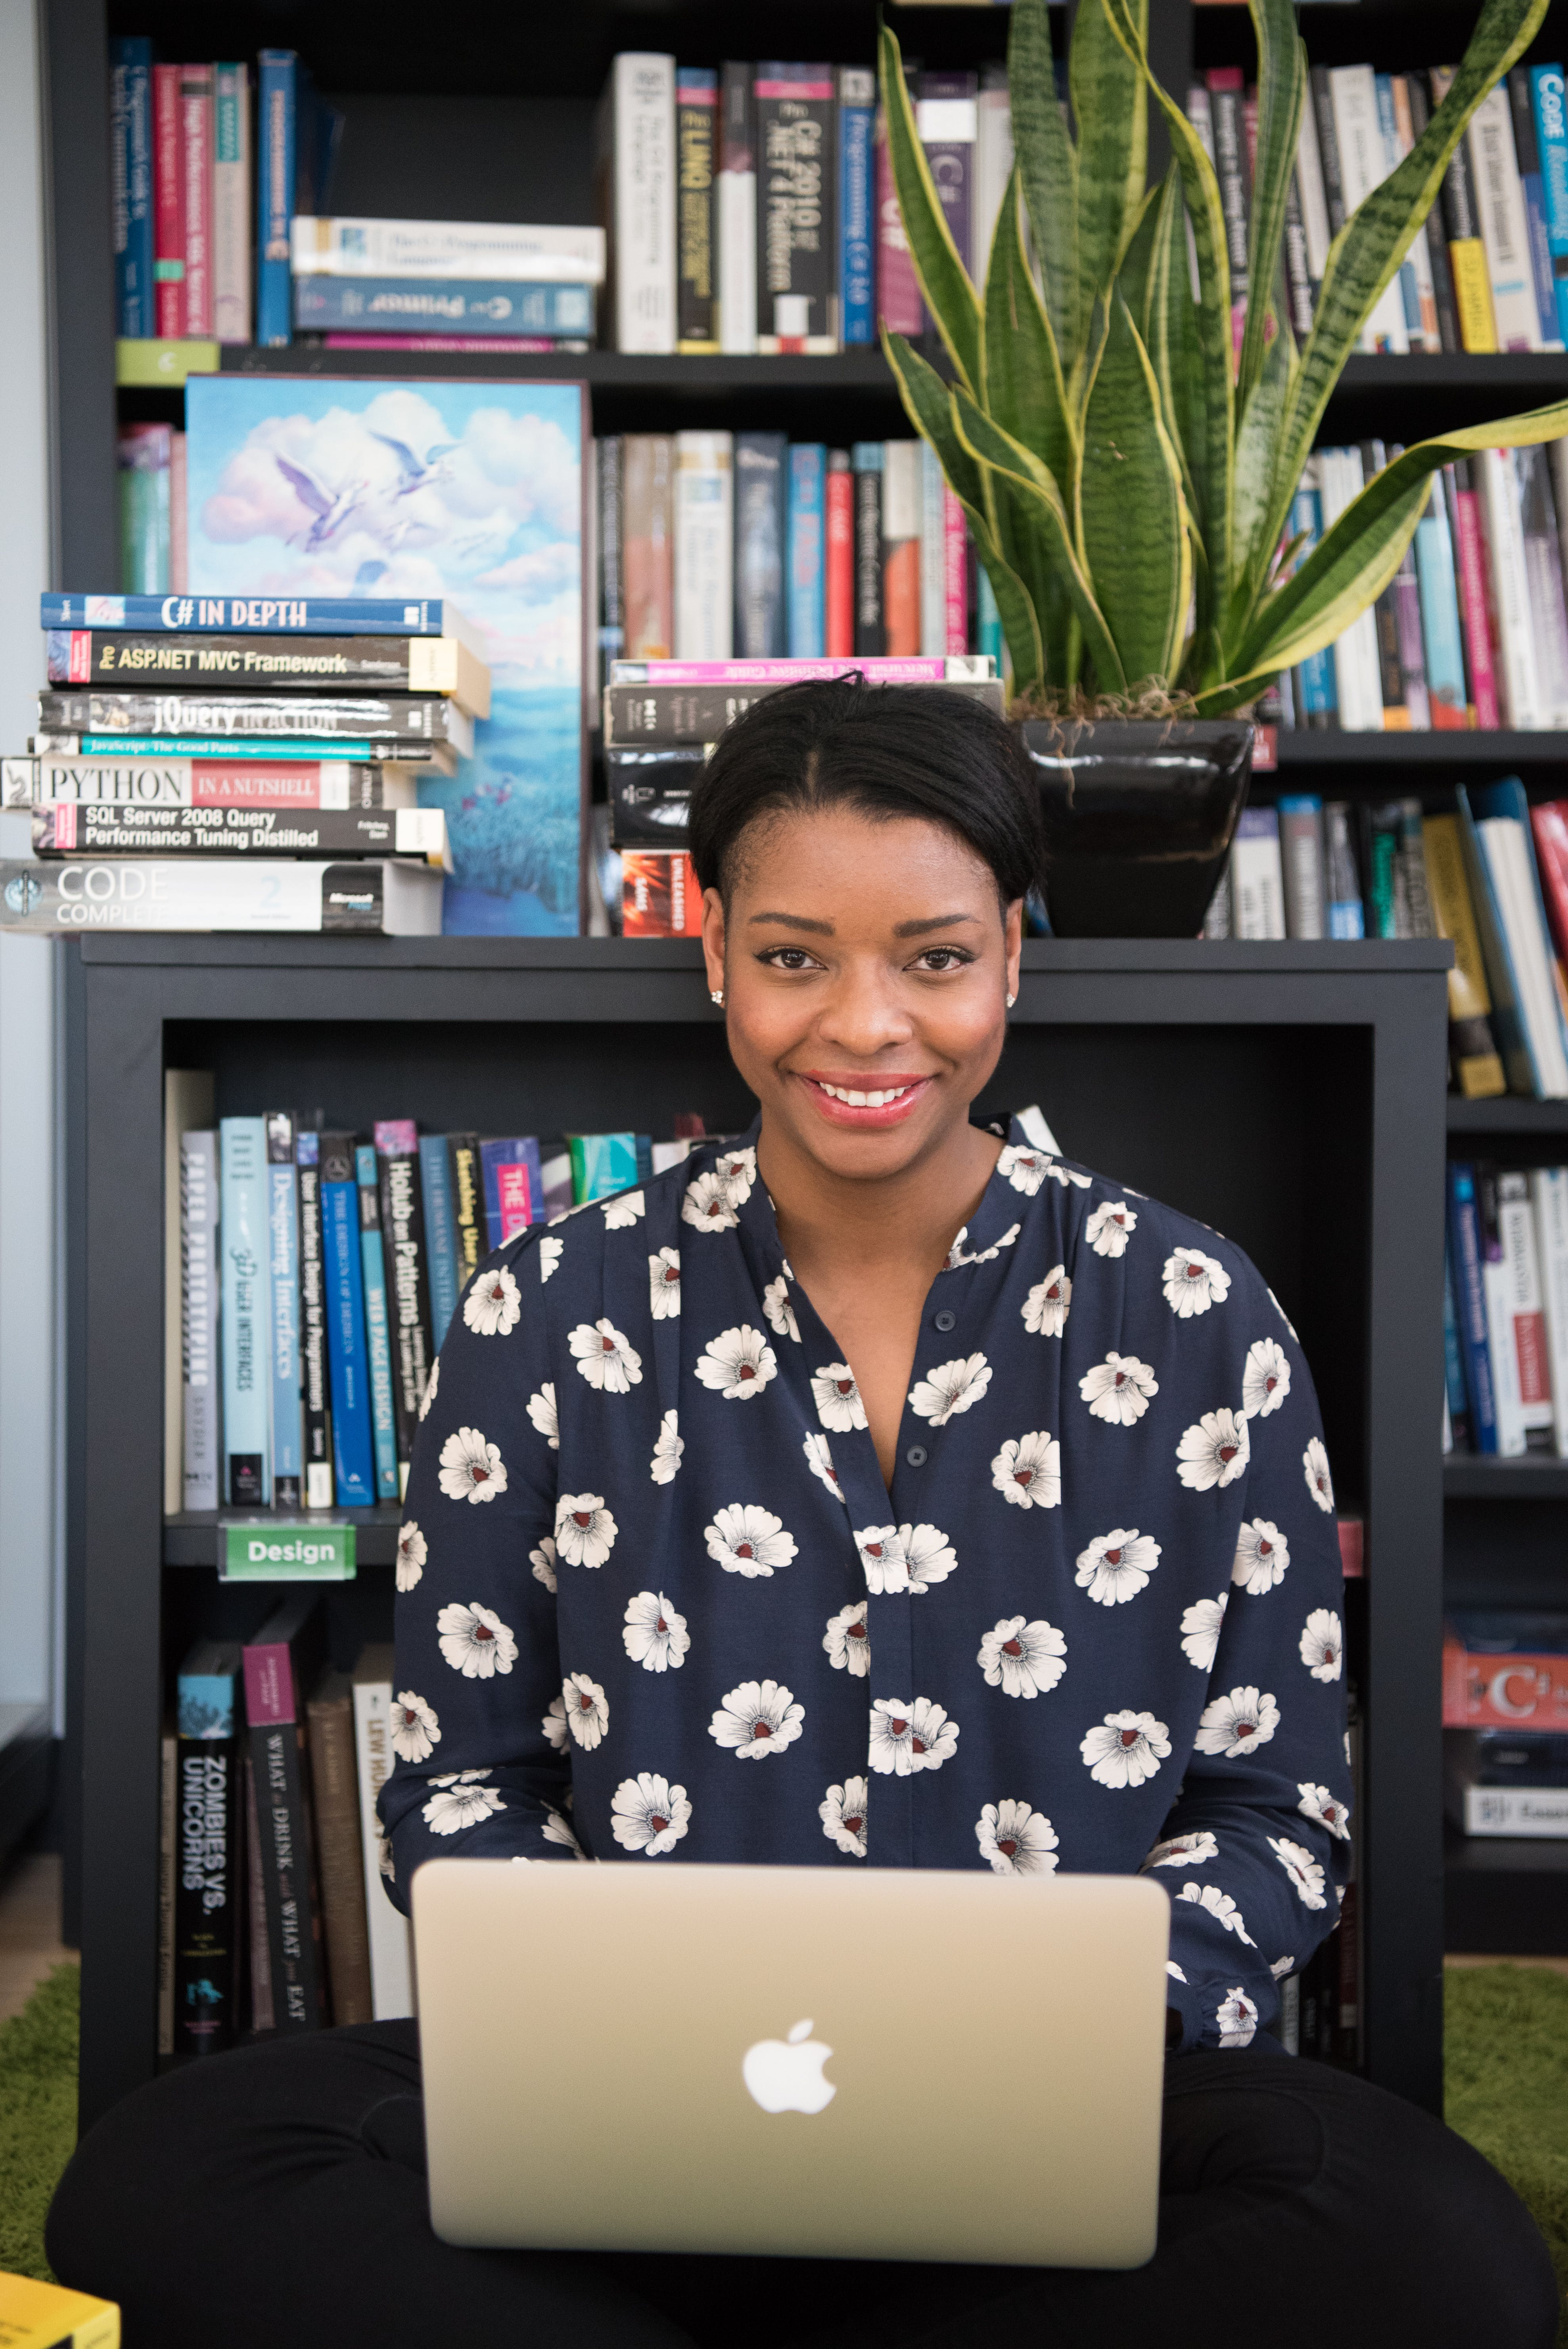 Woman in Black Floral Long-sleeved Top Near Book Shelves